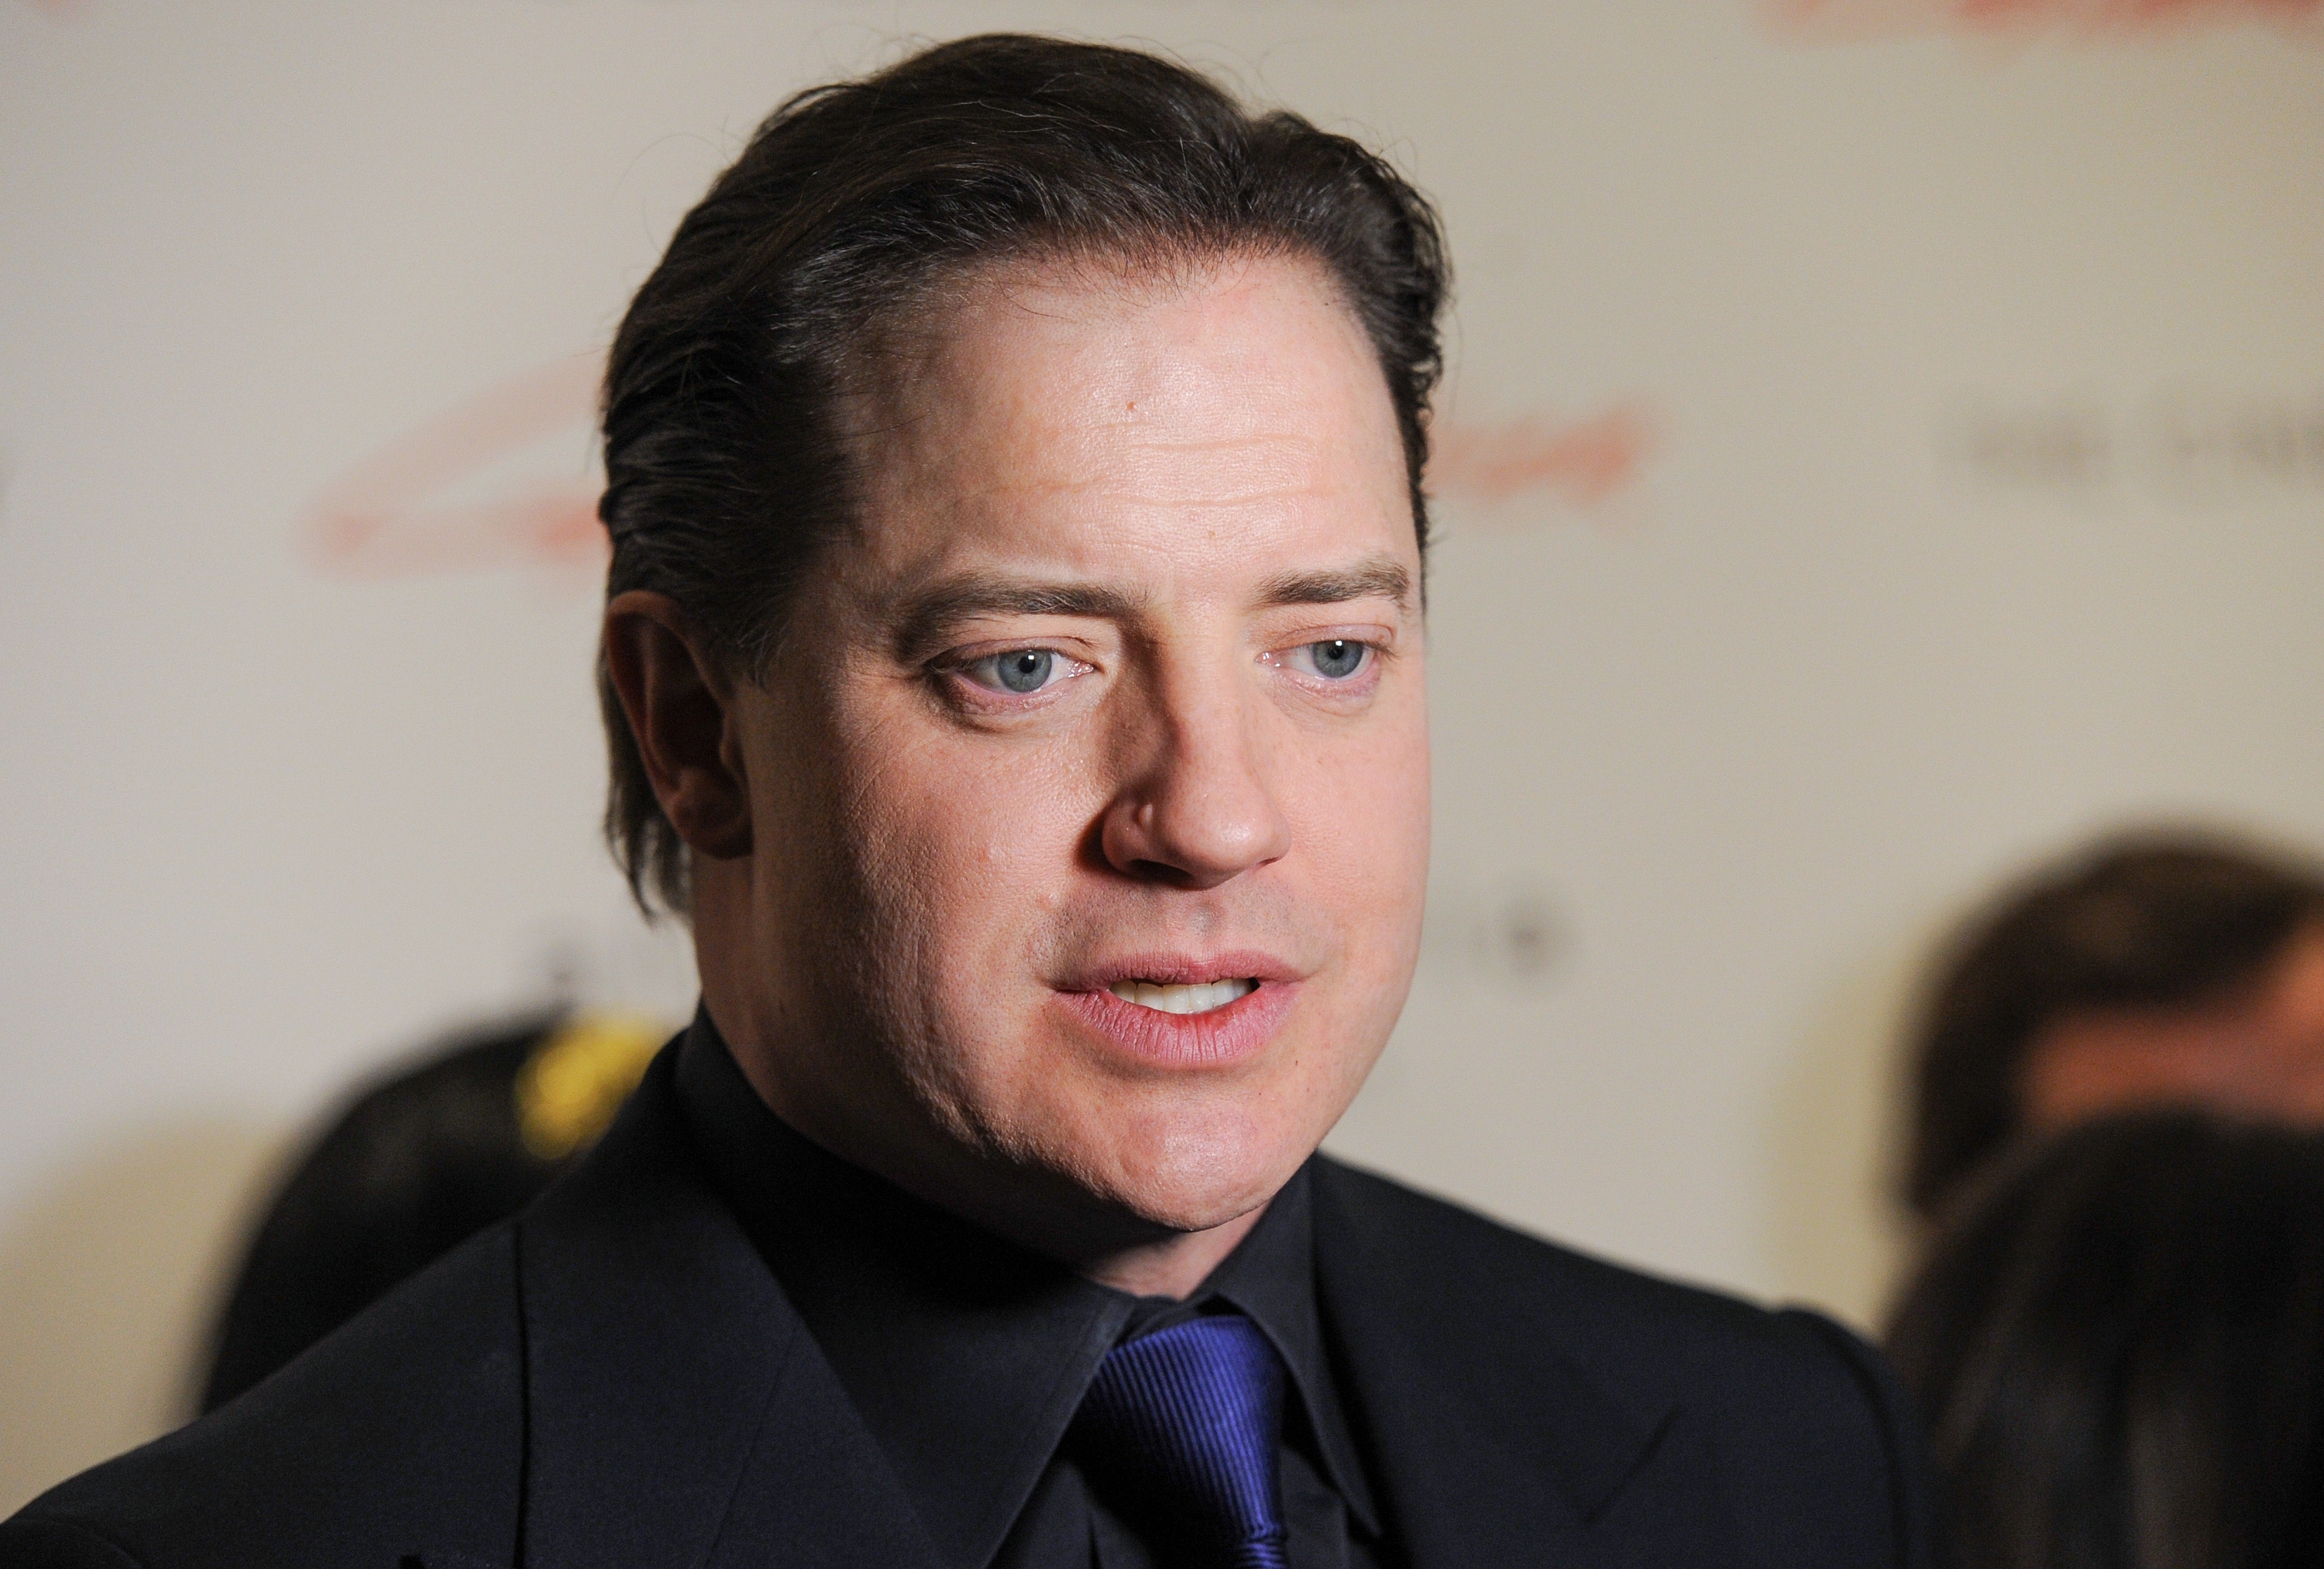 Brendan Fraser Accused The Former Hollywood Foreign Press Association President of Sexual Assault